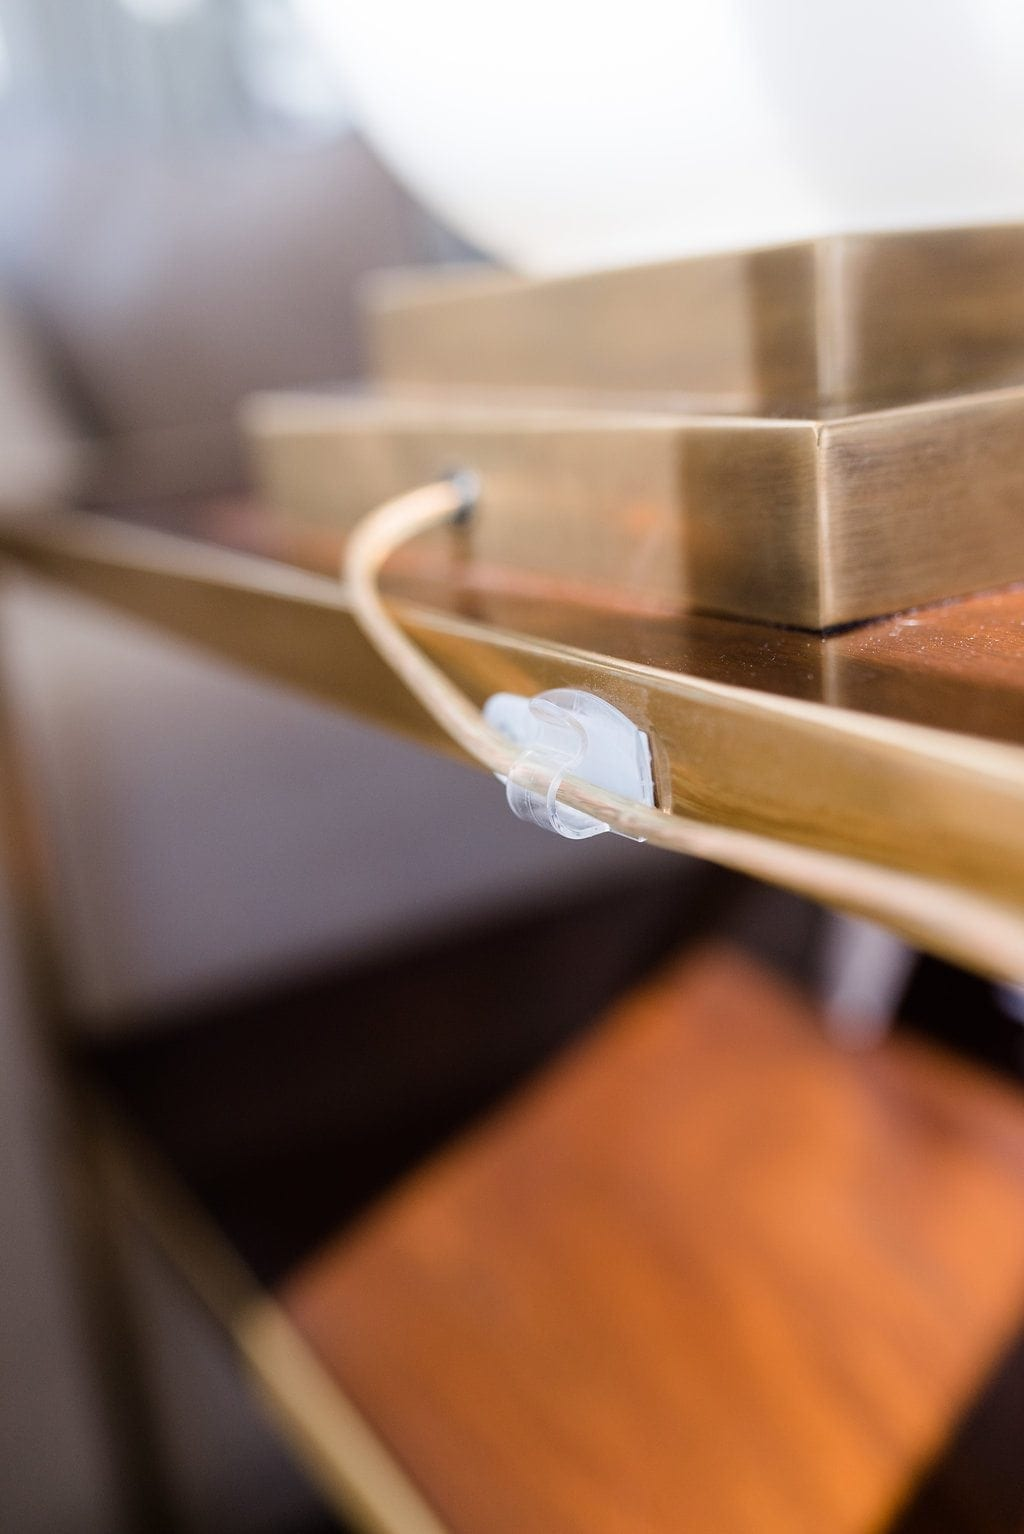 Easy tips to hide cords in your house and keep cords out of view when decorating.